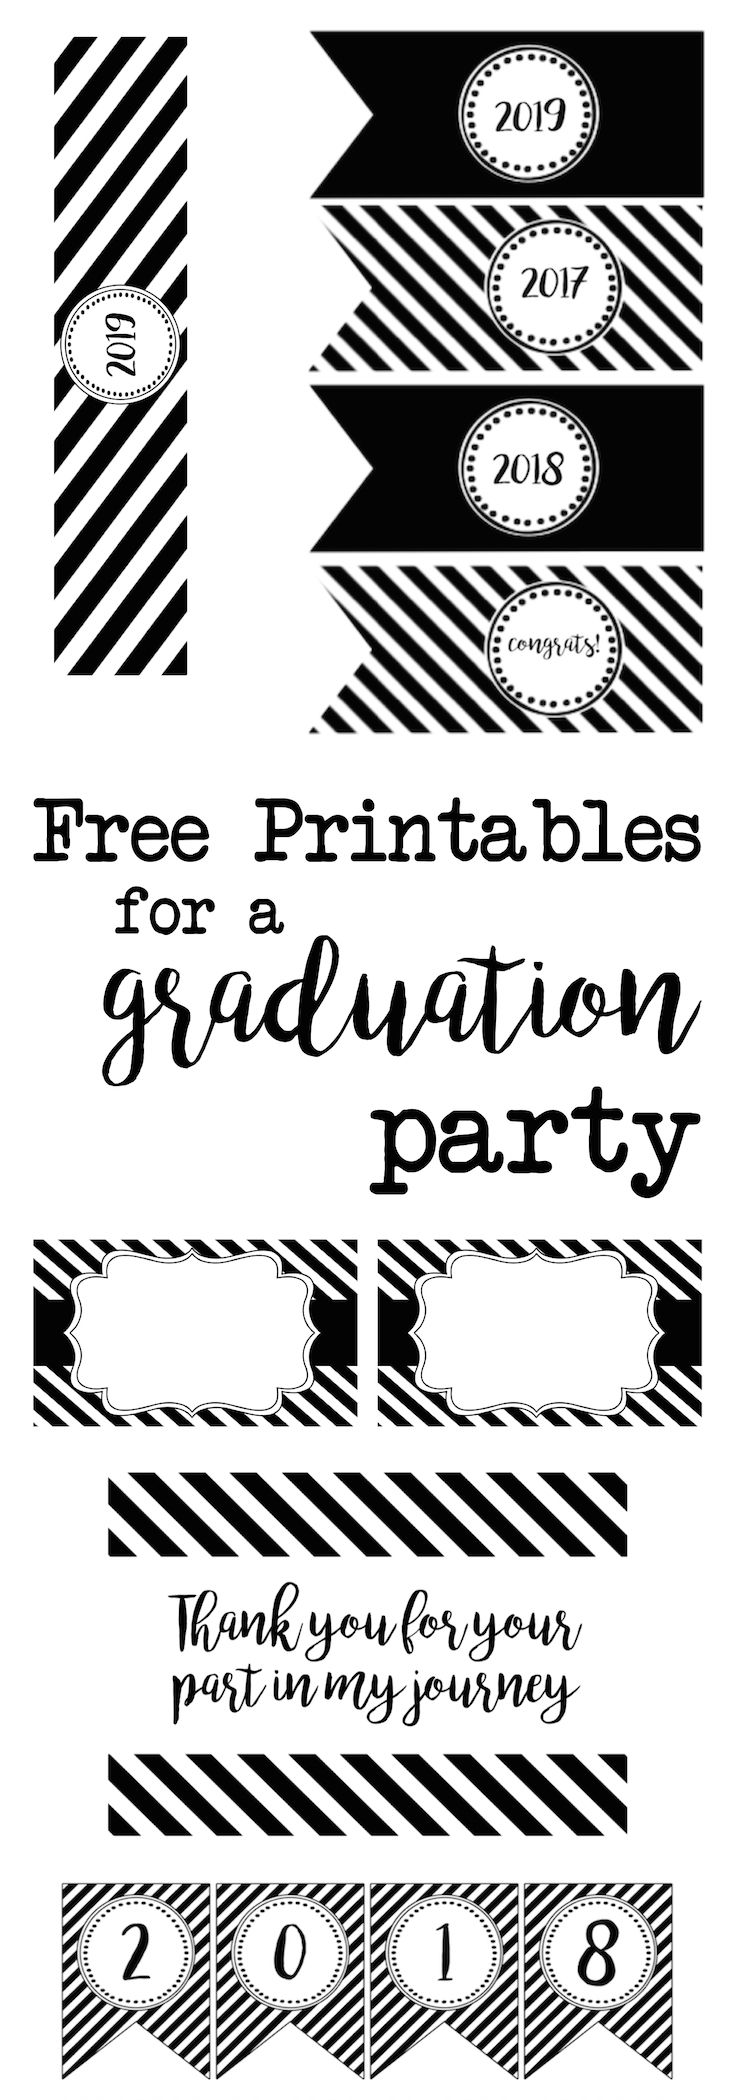 graduation party  printables graduation templates